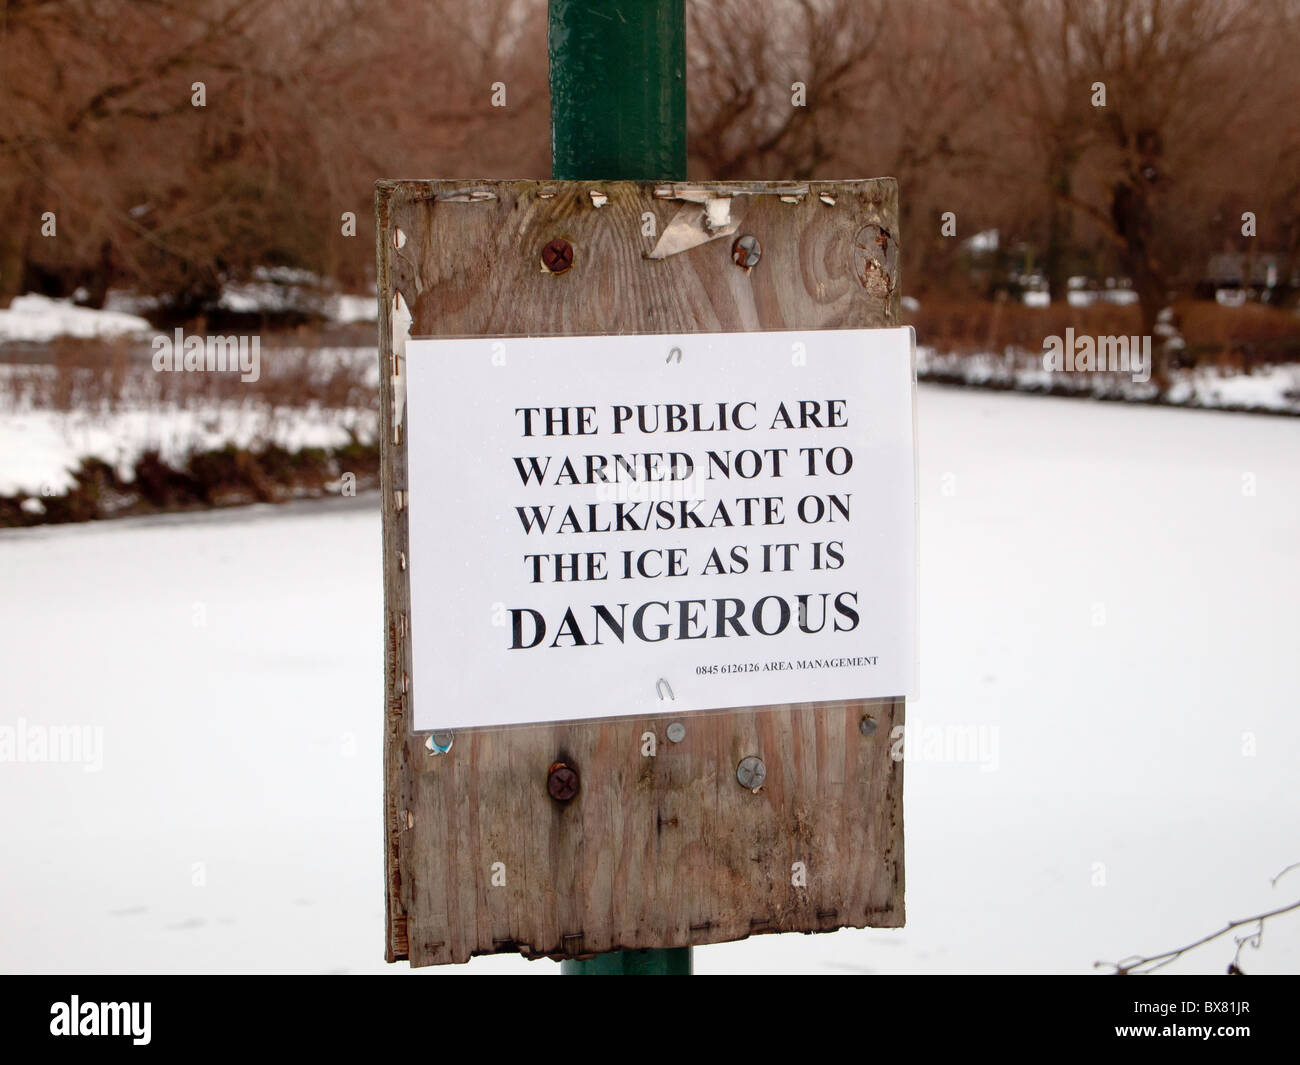 Danger Notice: The public are warned not to walk/skate on the ice as it is dangerous - Stock Image